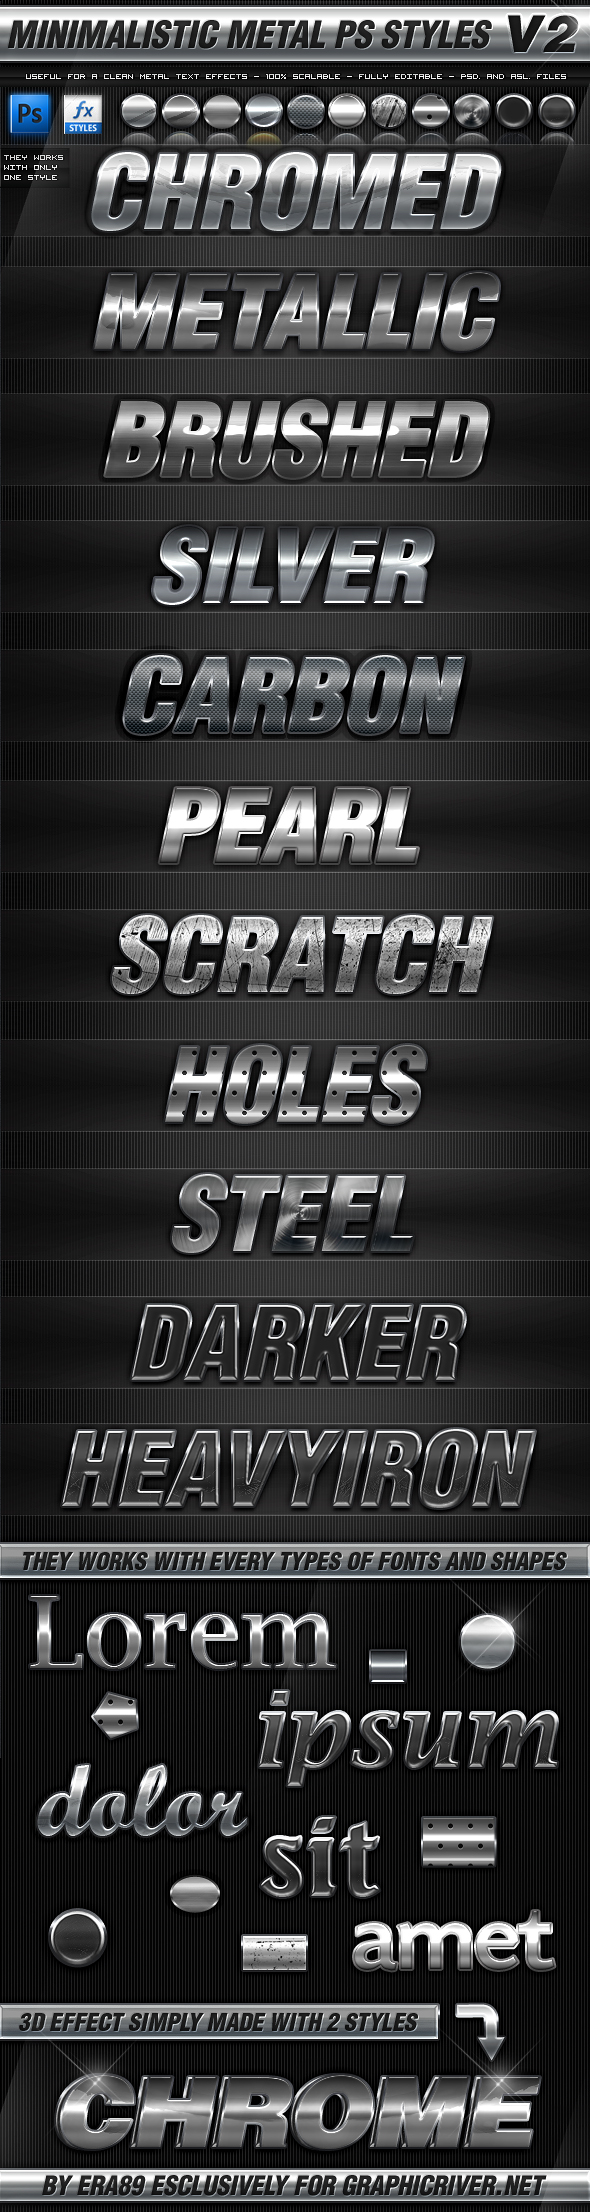 Minimalistic Metal PS Layer Styles V2 by KoolGfx